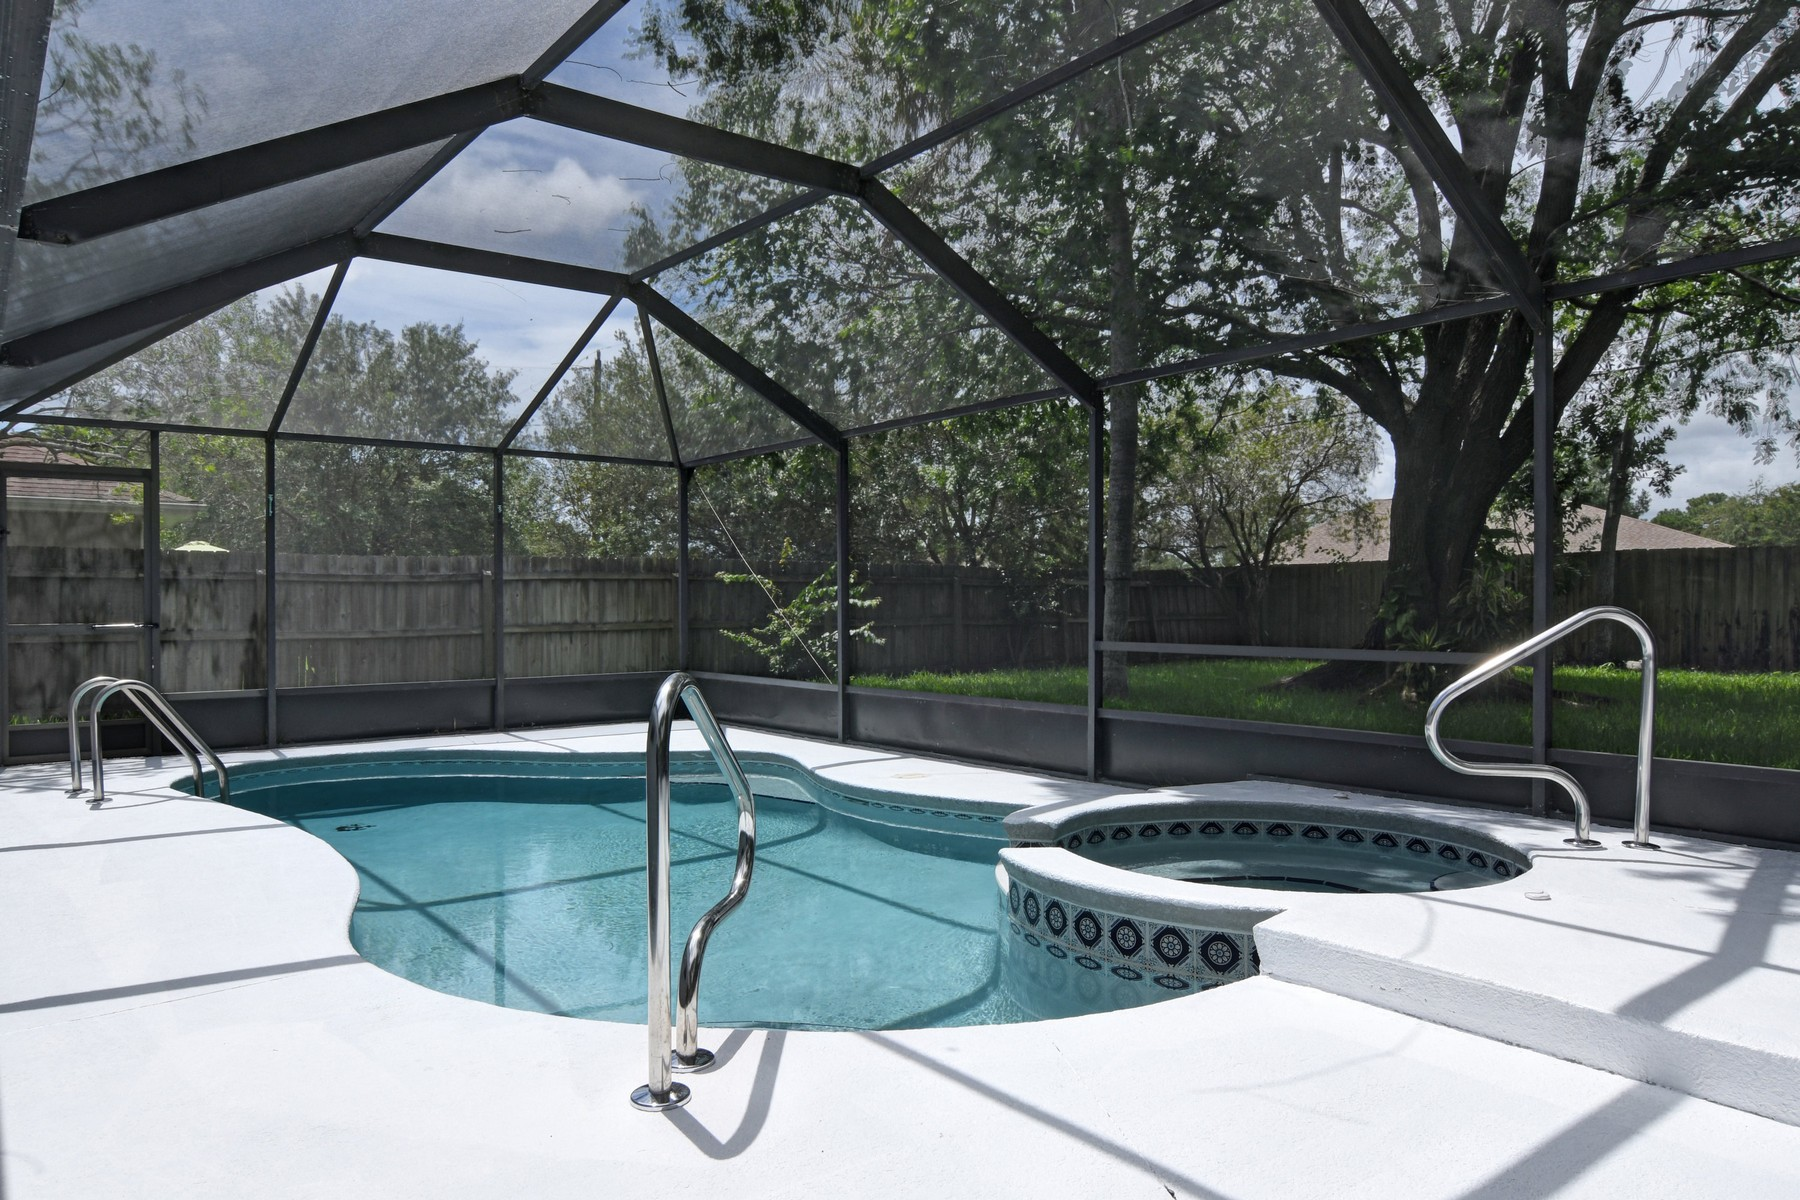 Single Family Home for Sale at Newly Renovated Pool Home 127 Mabry Street Sebastian, Florida, 32958 United States